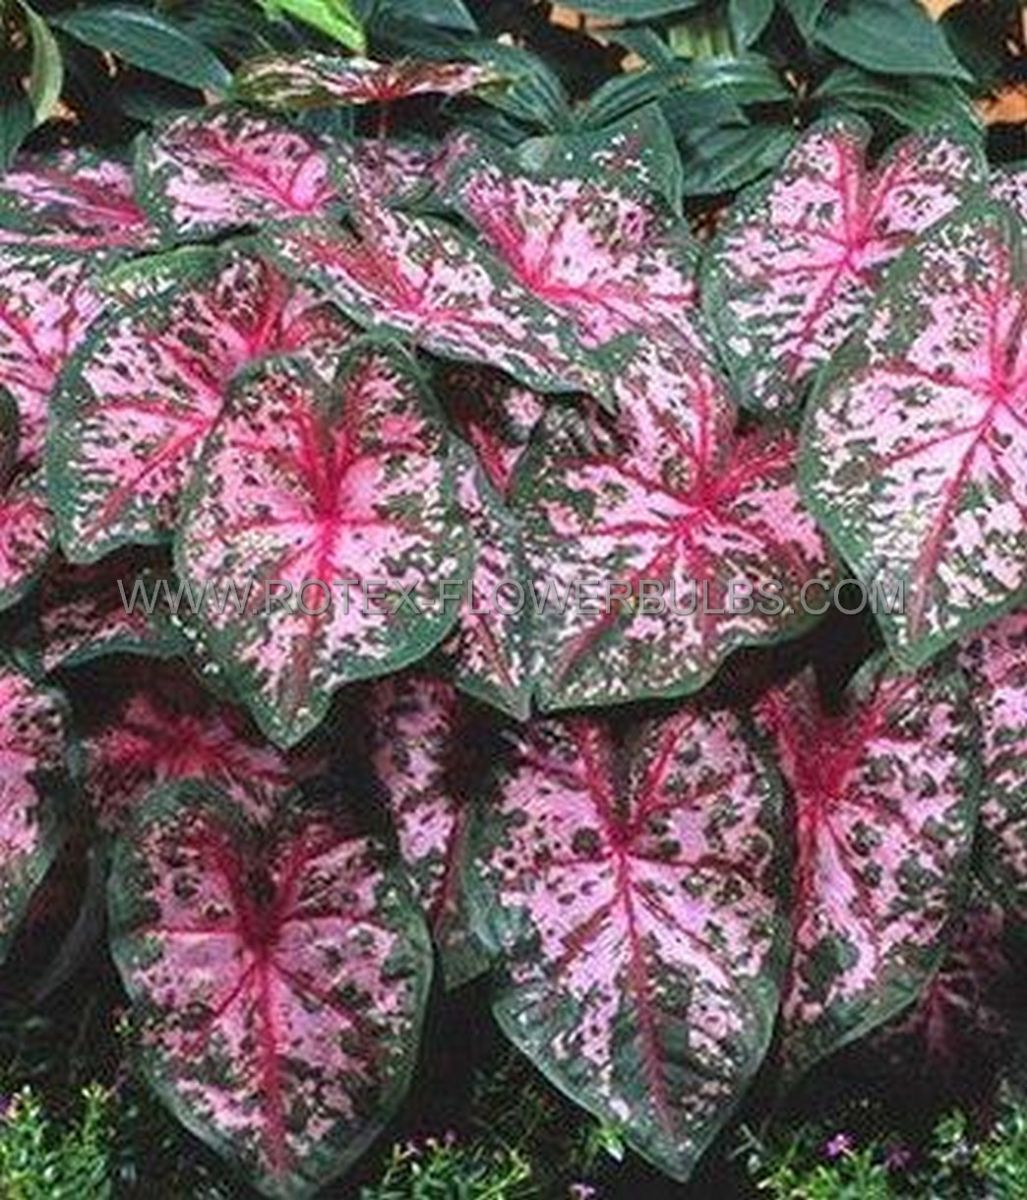 caladium fancy leaved carolyn whorton no1 50 pbinbox